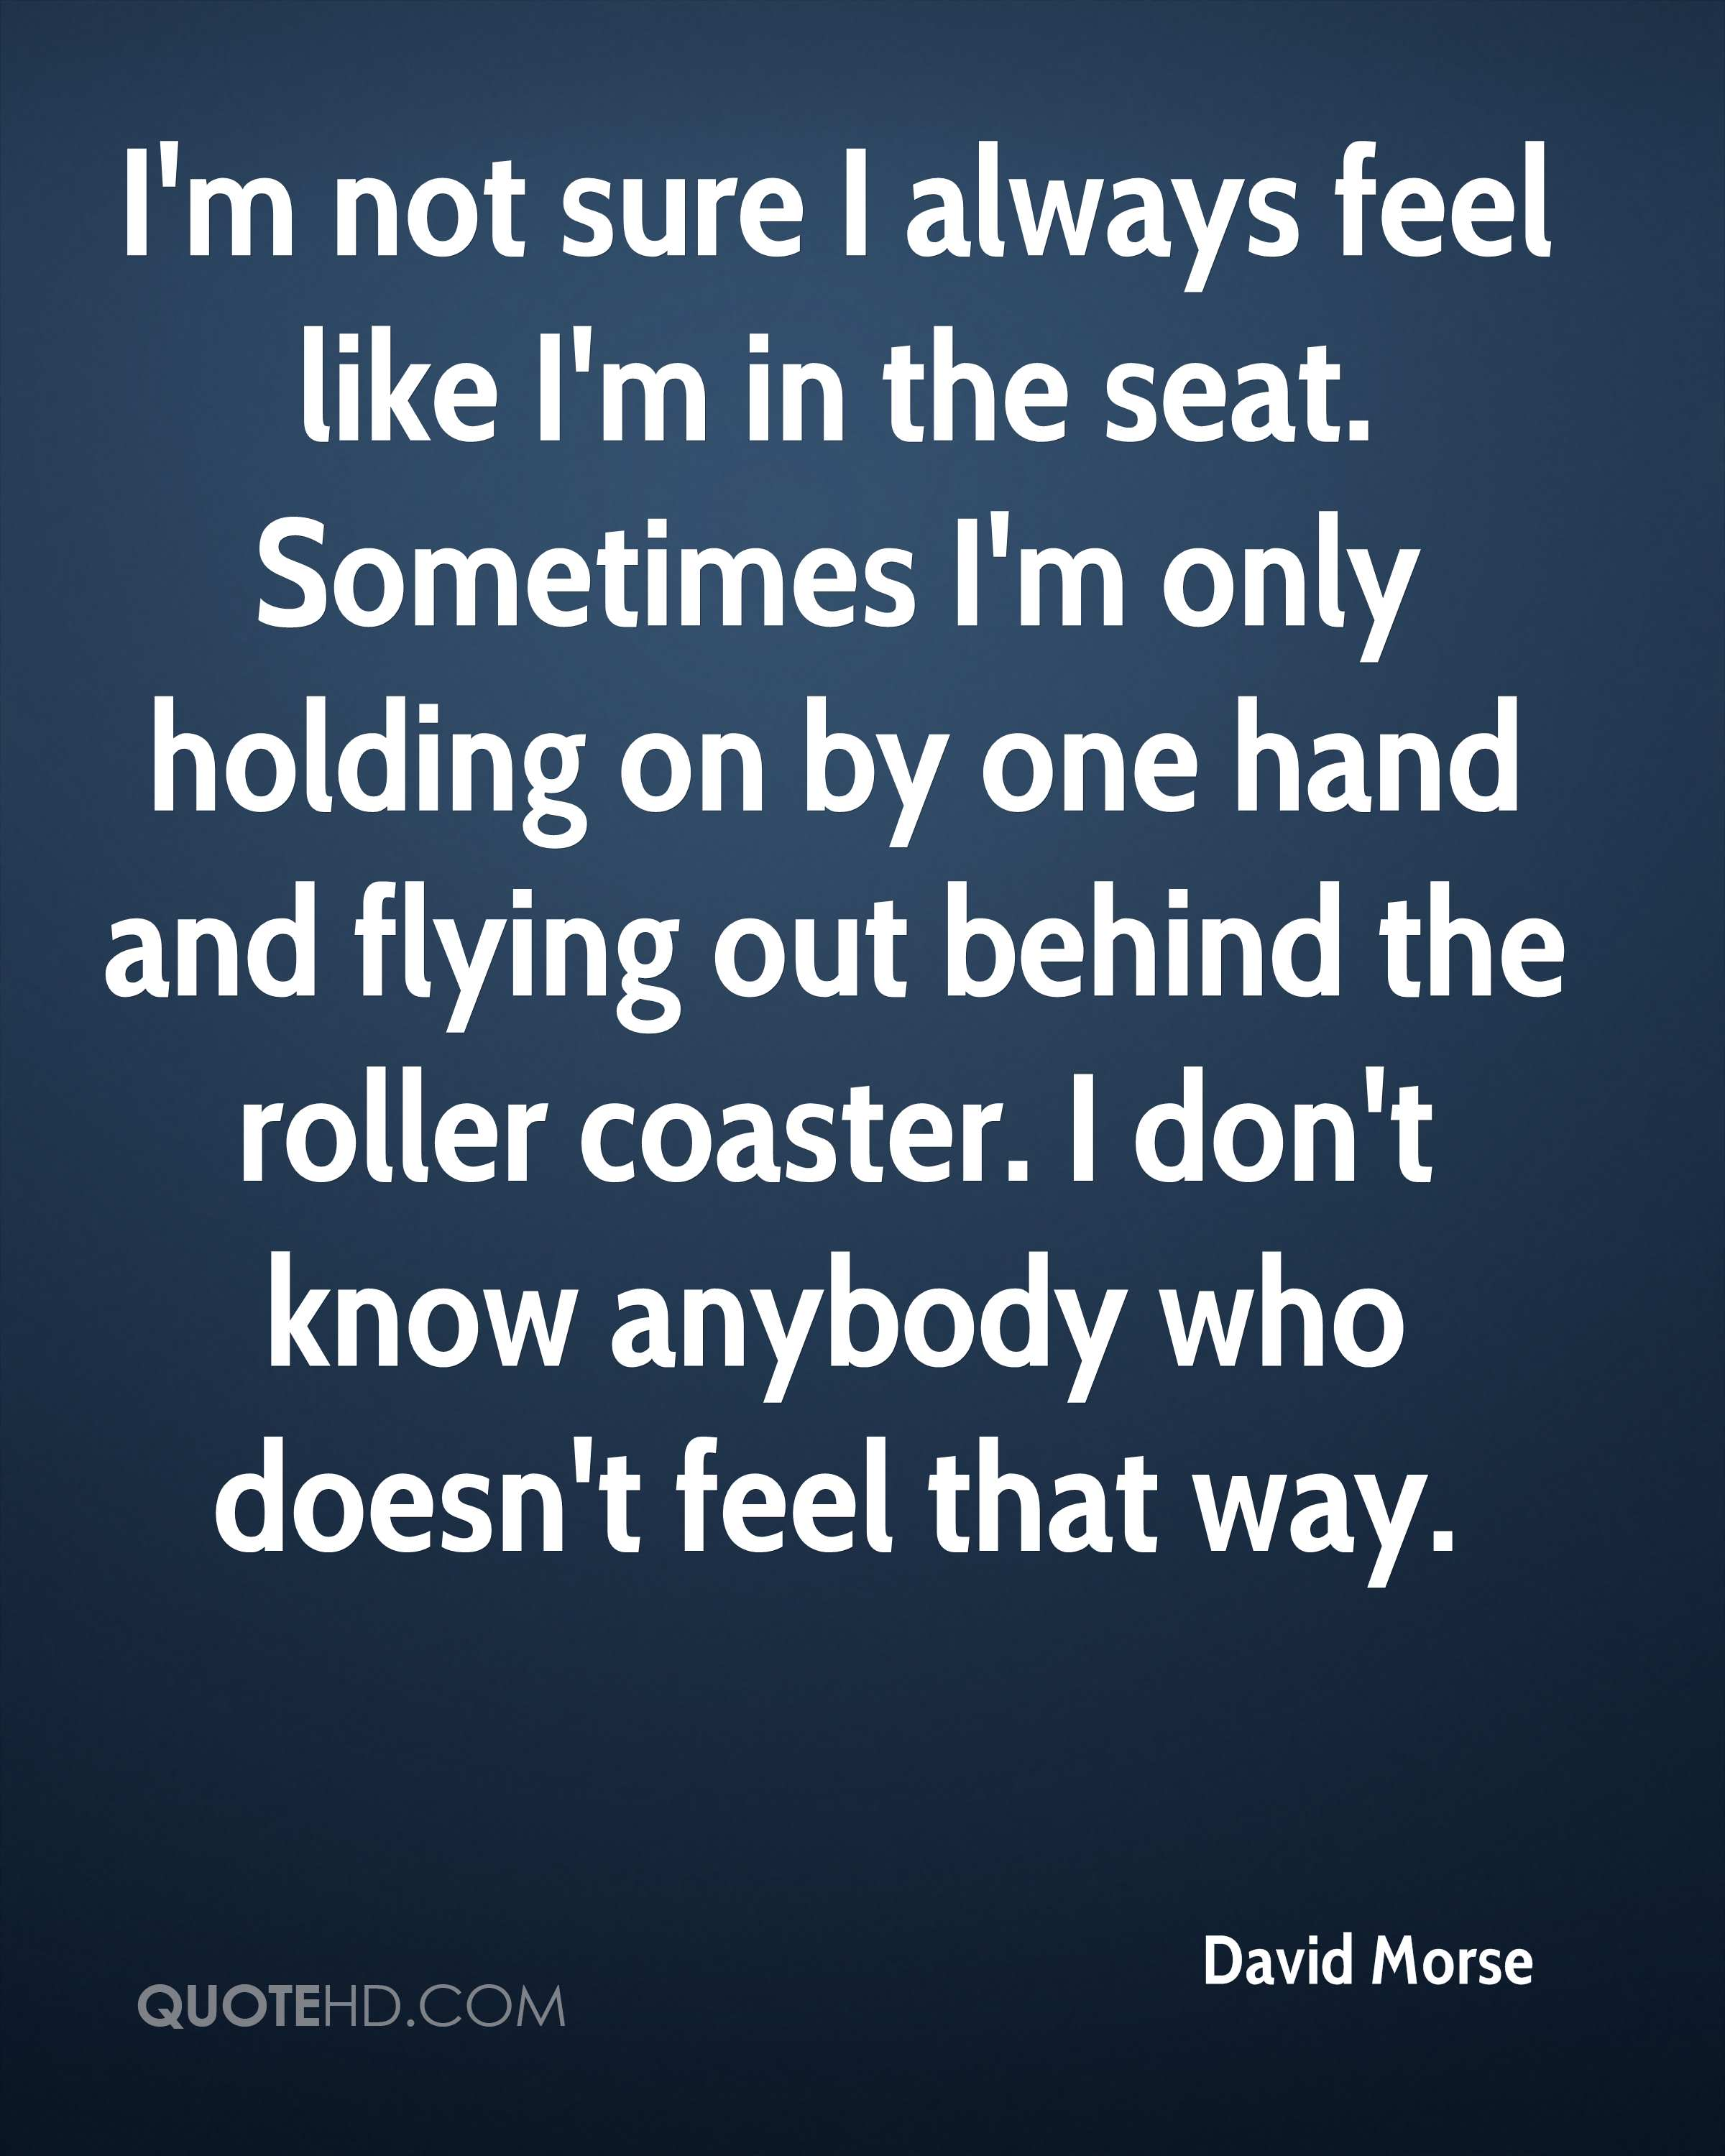 I'm not sure I always feel like I'm in the seat. Sometimes I'm only holding on by one hand and flying out behind the roller coaster. I don't know anybody who doesn't feel that way.